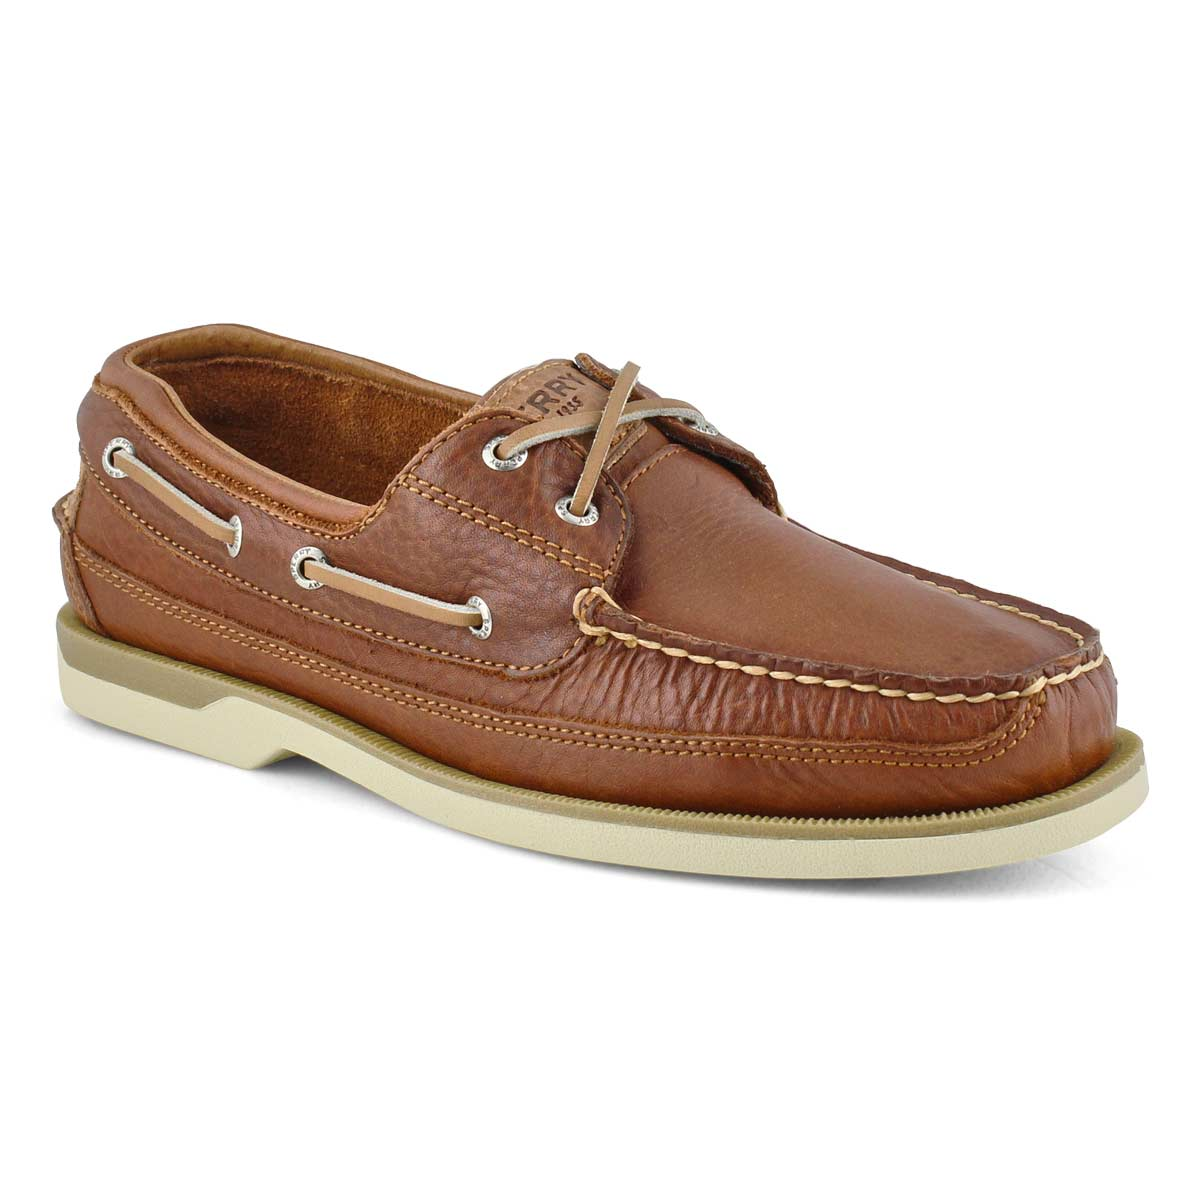 Men's MAKO 2 eye CANOE MOC tan boat shoe